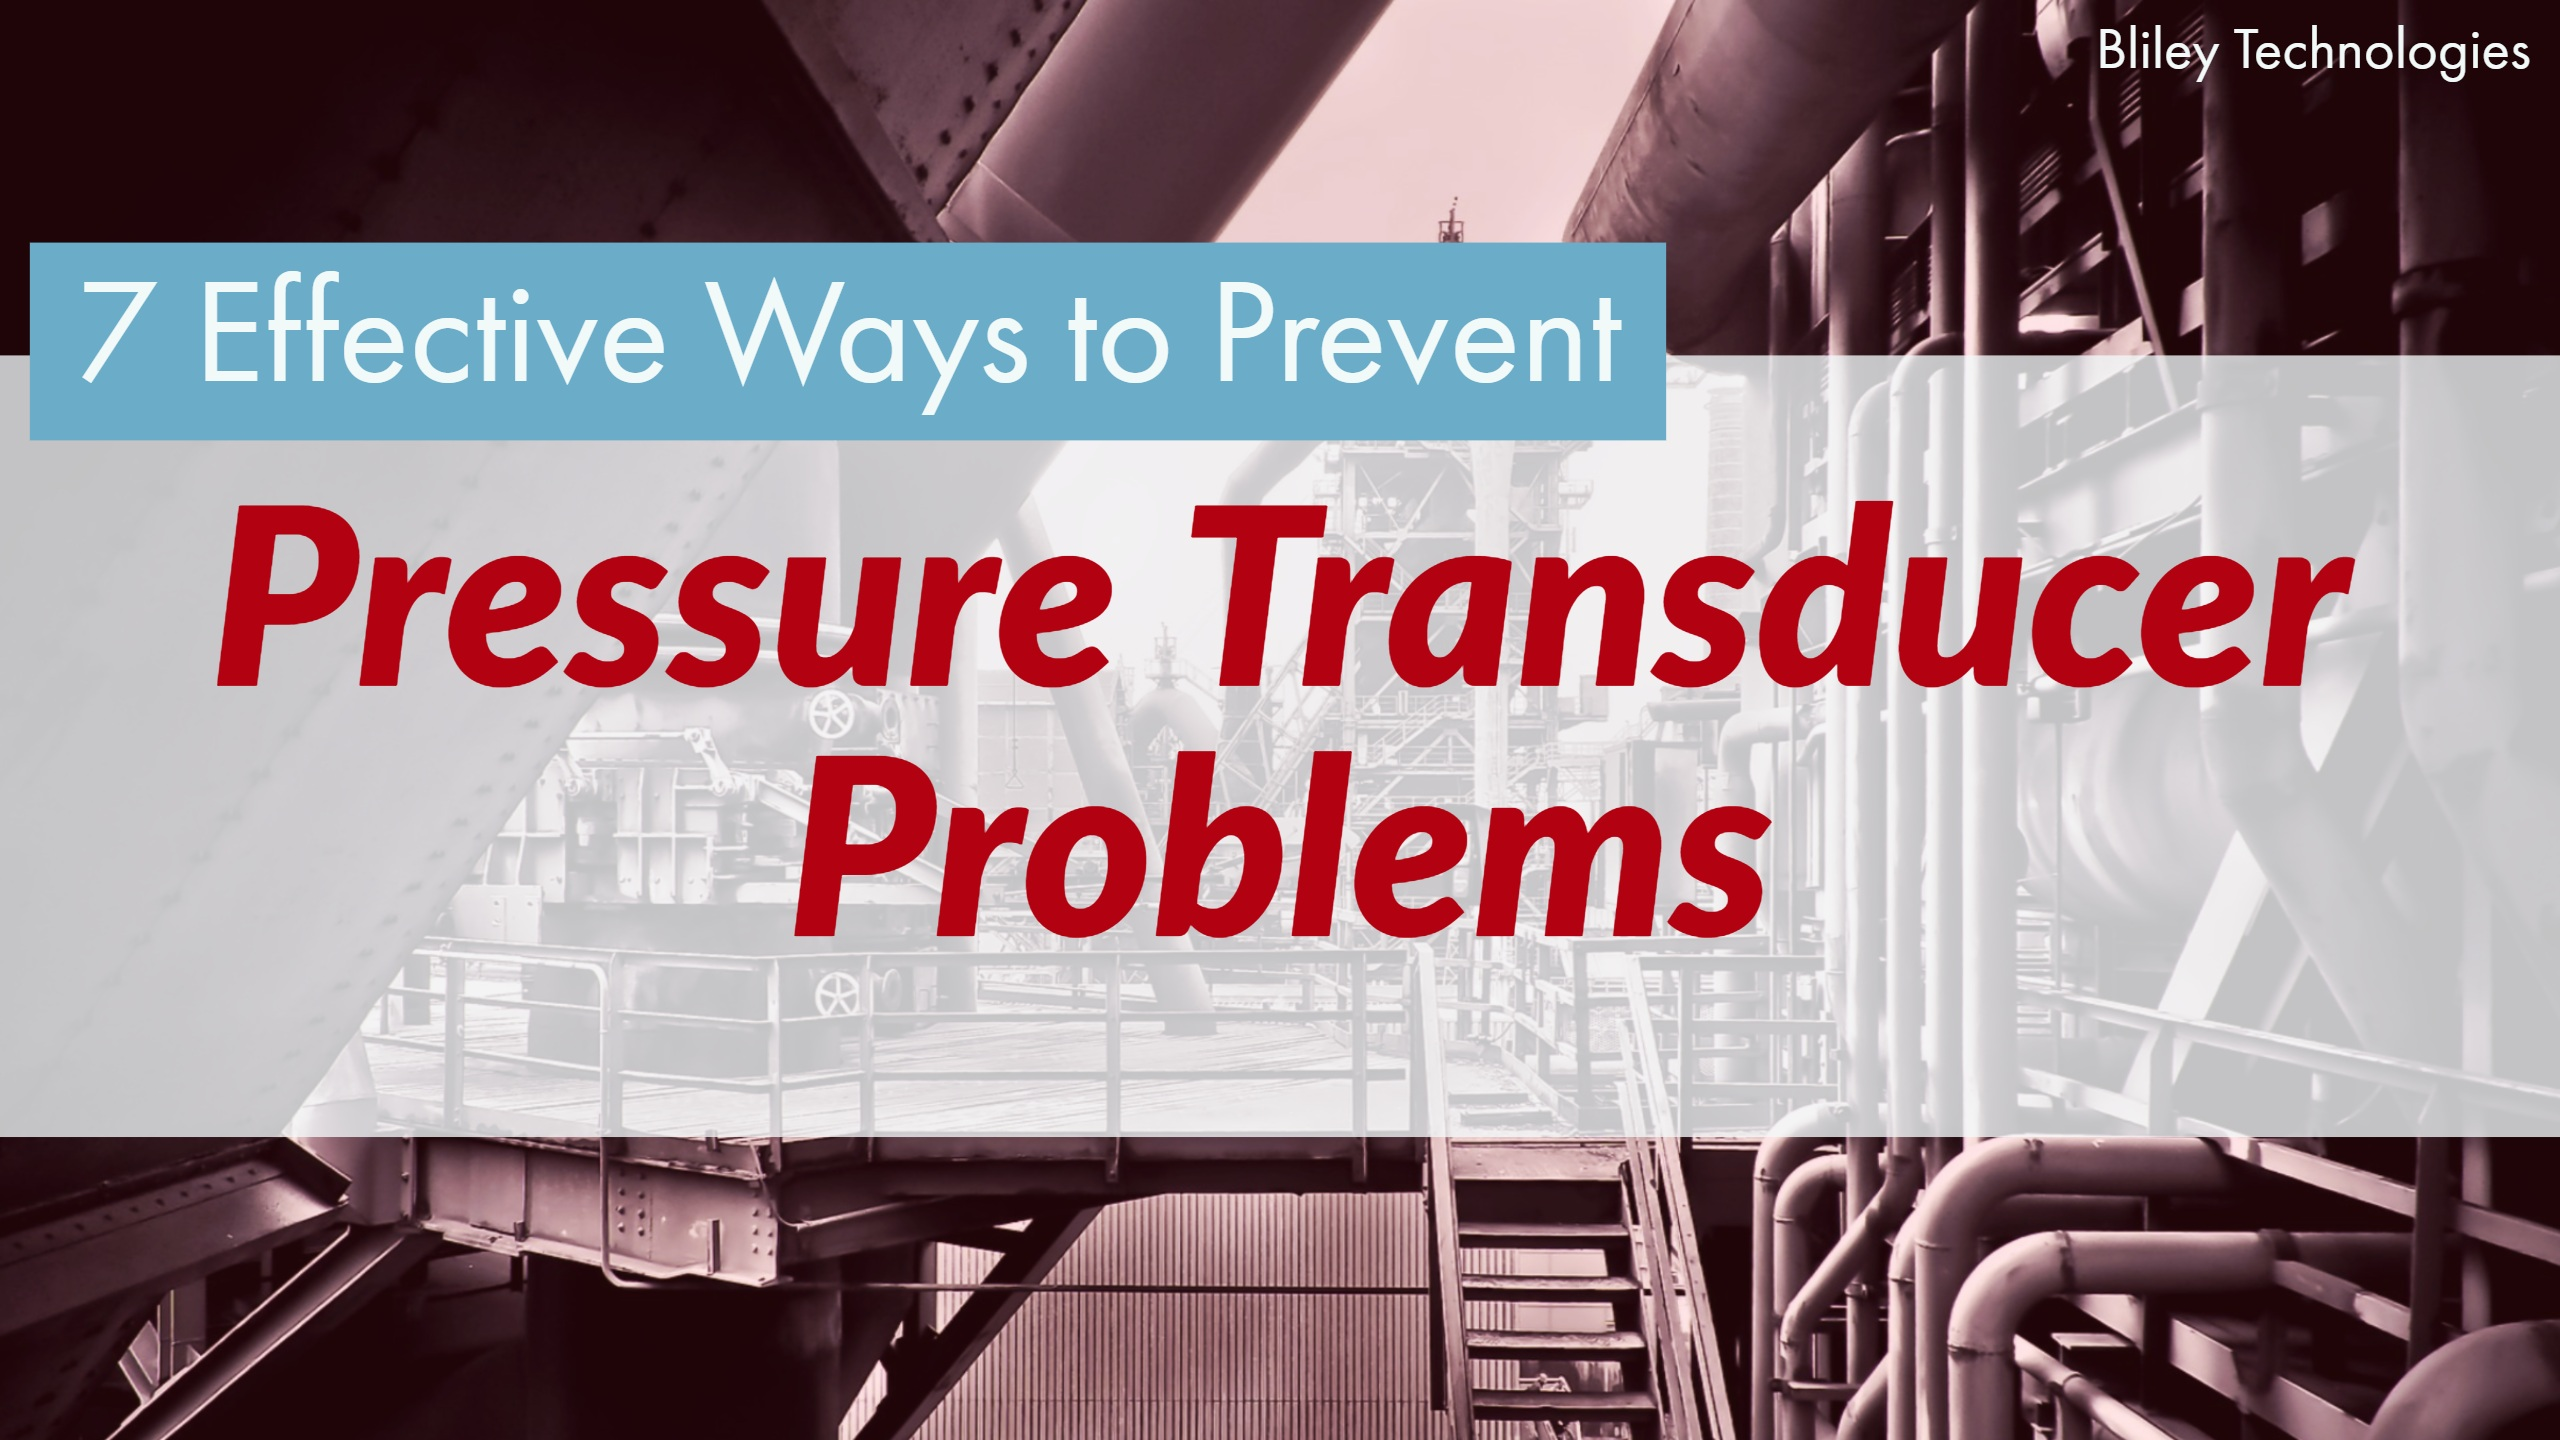 7 Incredibly Effective Ways to Prevent Pressure Transducer